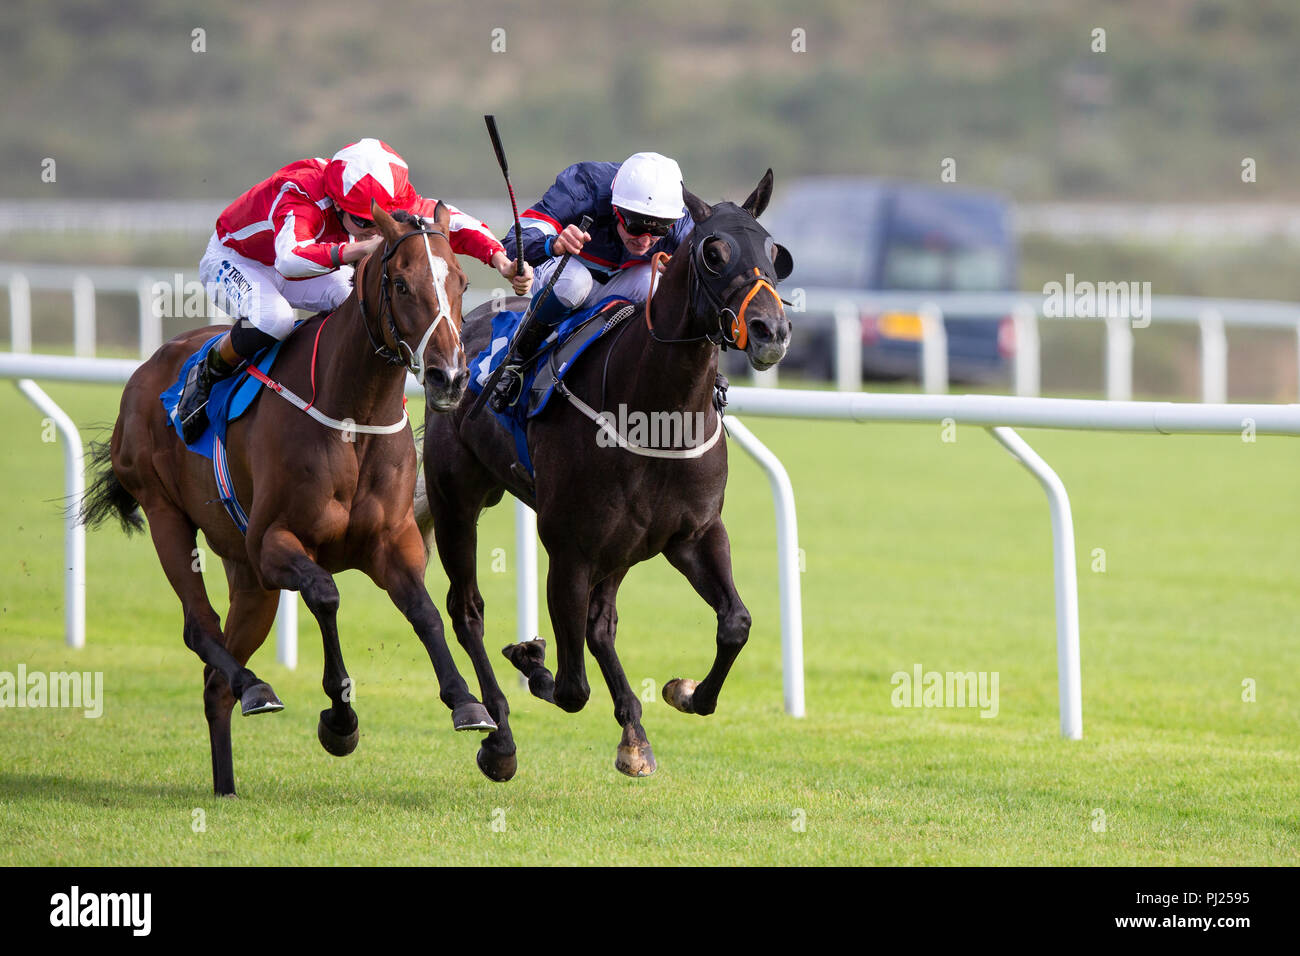 Racehorse Sir Plato ridden by jockey Finley Marsh (nearside) on the way to winning a race at Ffos Las racecourse - Stock Image